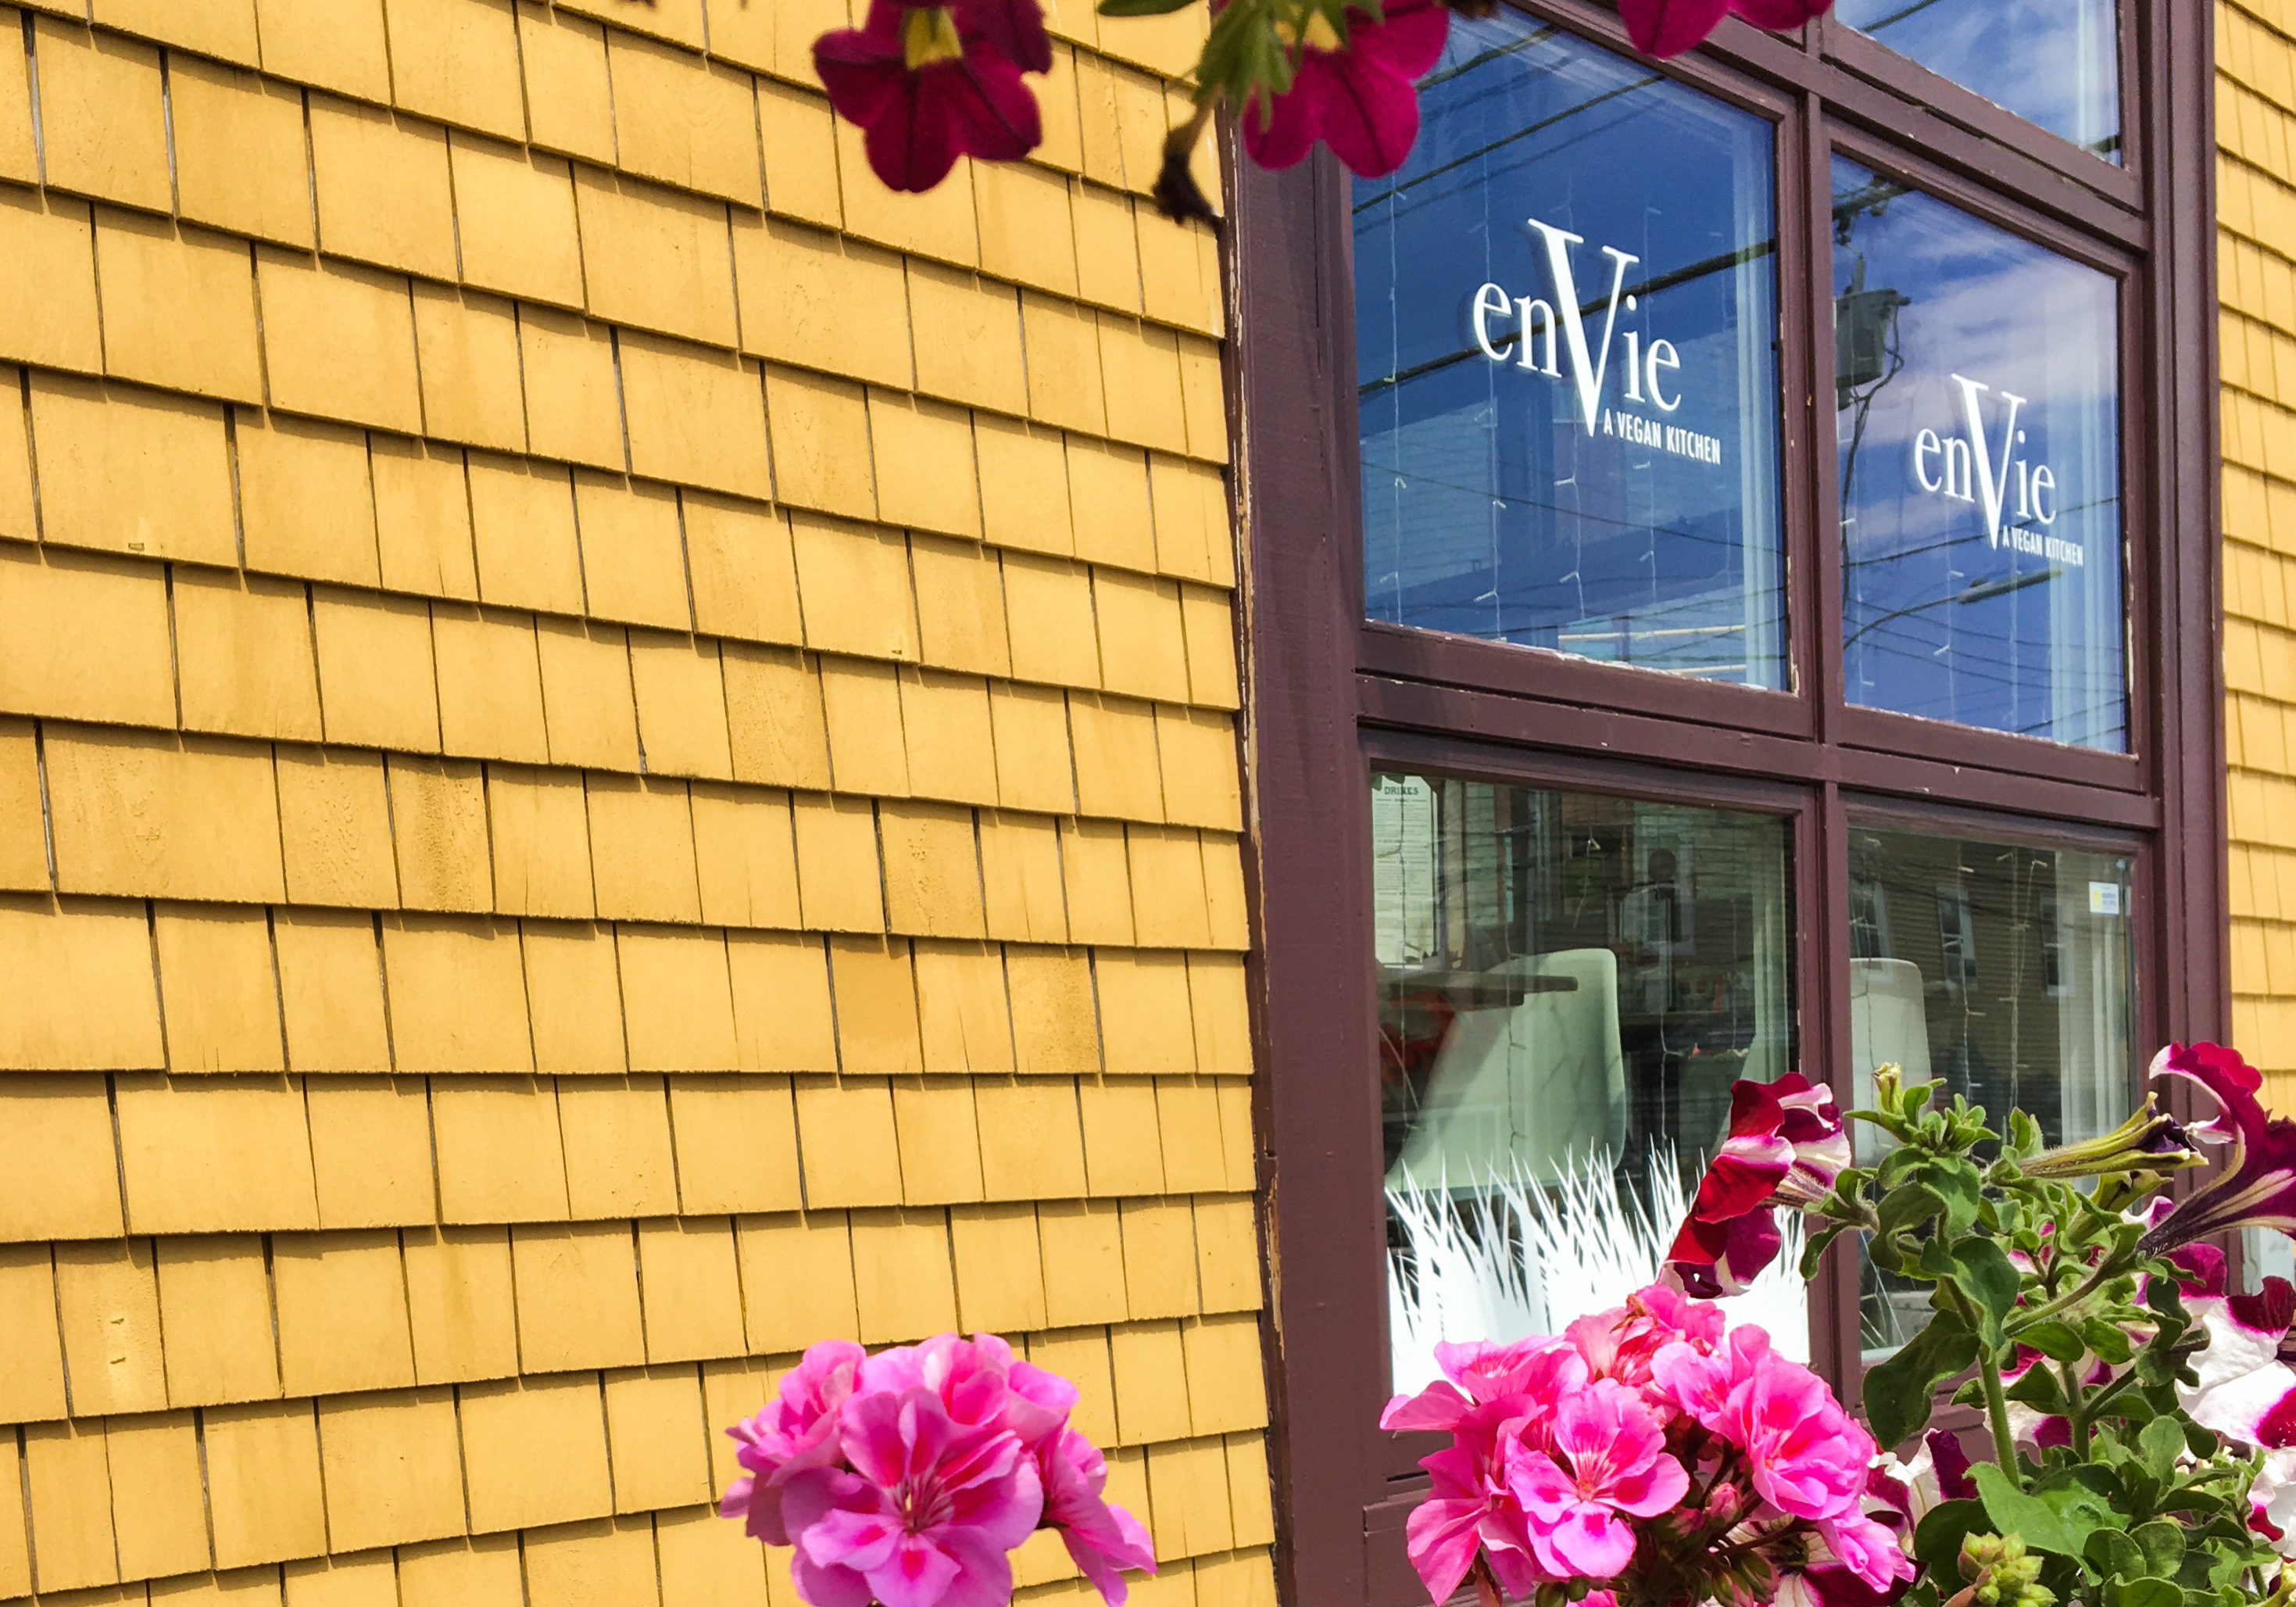 In this image: The side of enVie: A Vegan Kitchen.